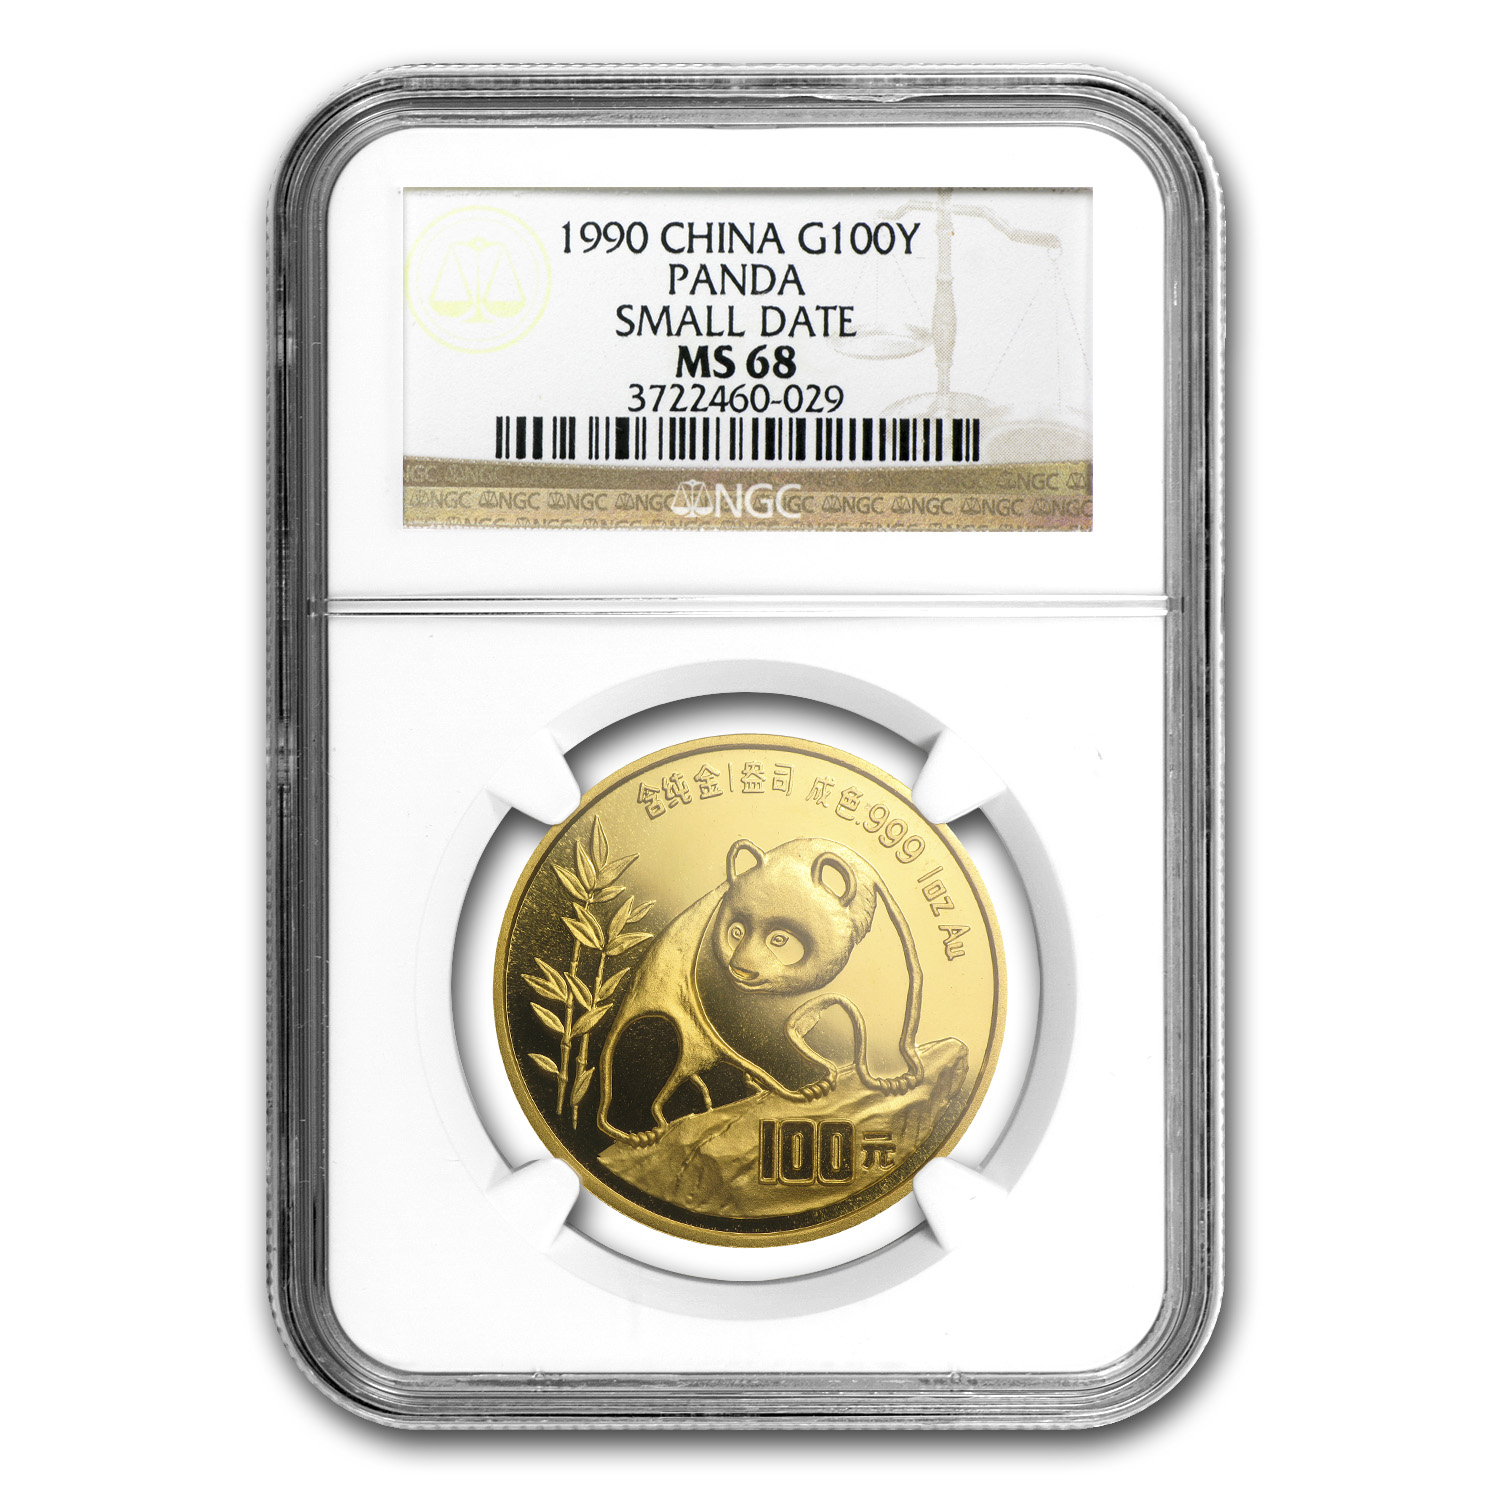 1990 China 1 oz Gold Panda Small Date MS-68 NGC